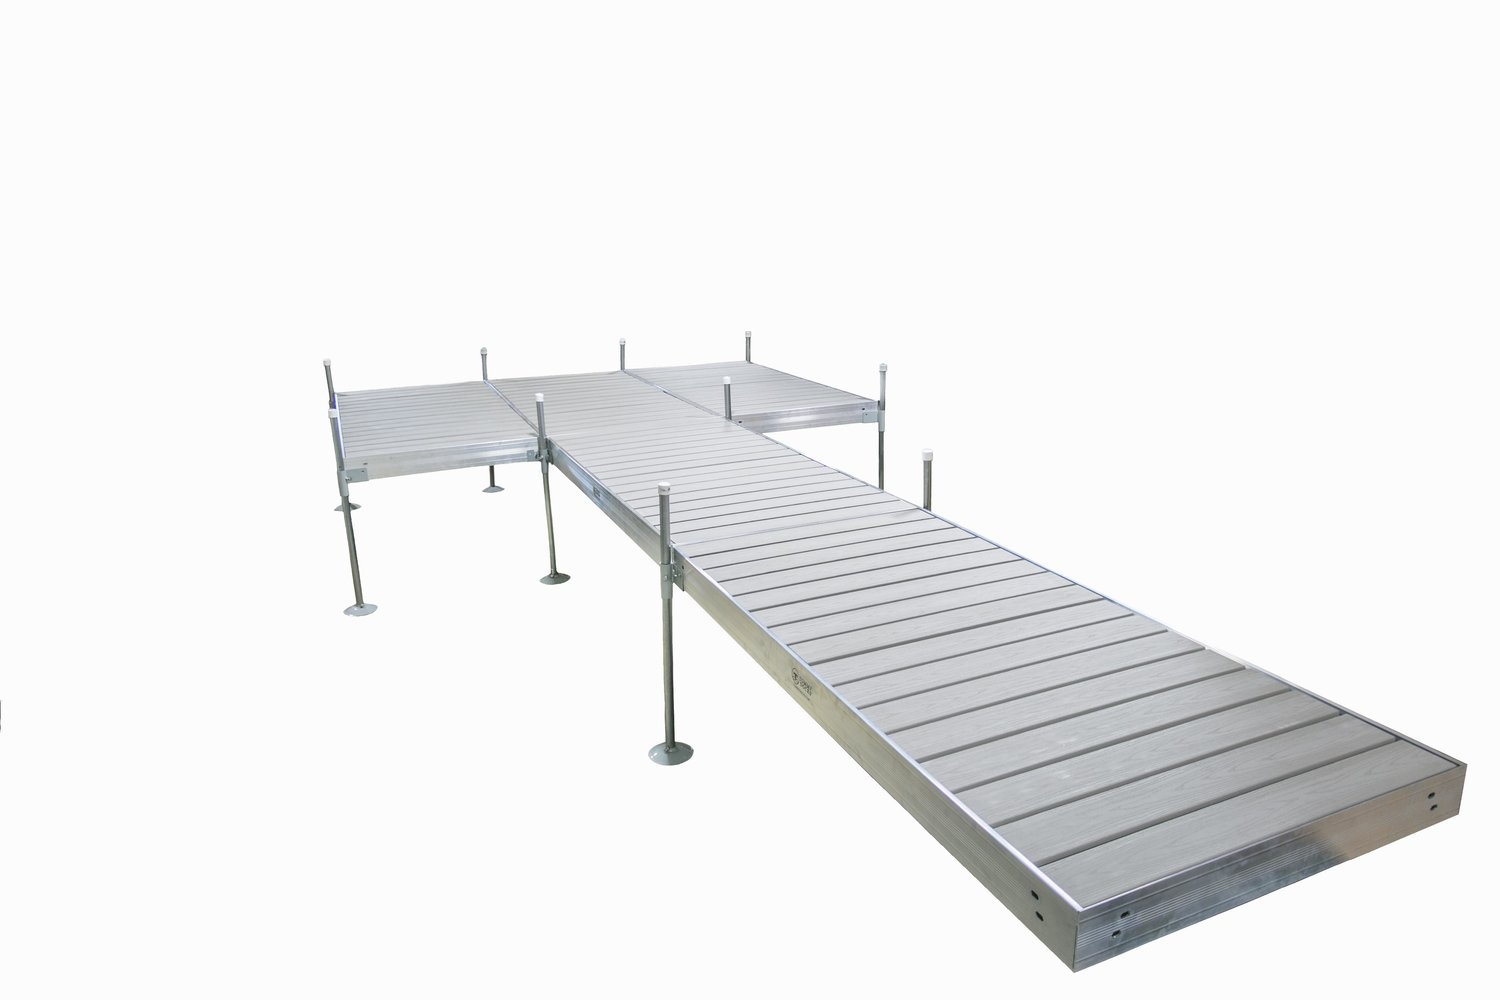 24 ft. L 8 ft. x 12 ft. Platform Style Aluminum Frame with Decking ...